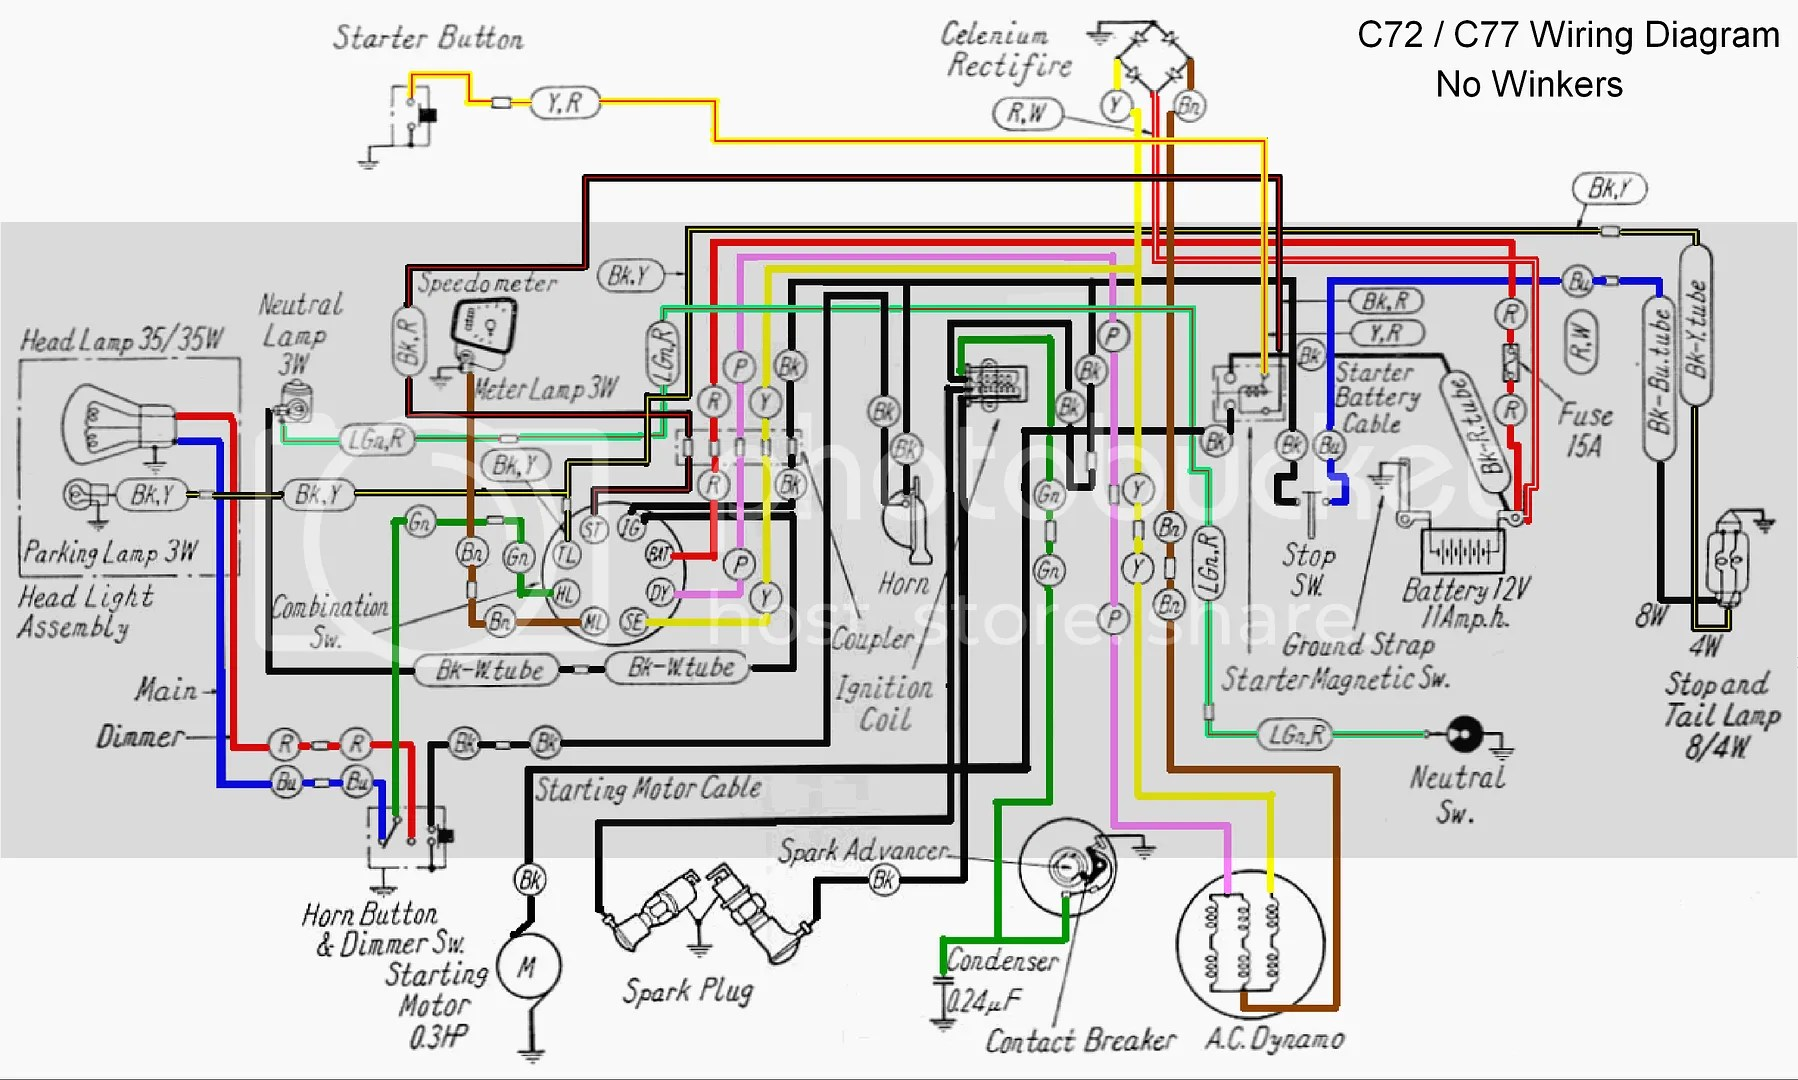 honda sl175 wiring diagram wiring diagram honda 175 motorcycle cb 175 wiring diagram wiring diagram tutorialcb [ 1798 x 1080 Pixel ]